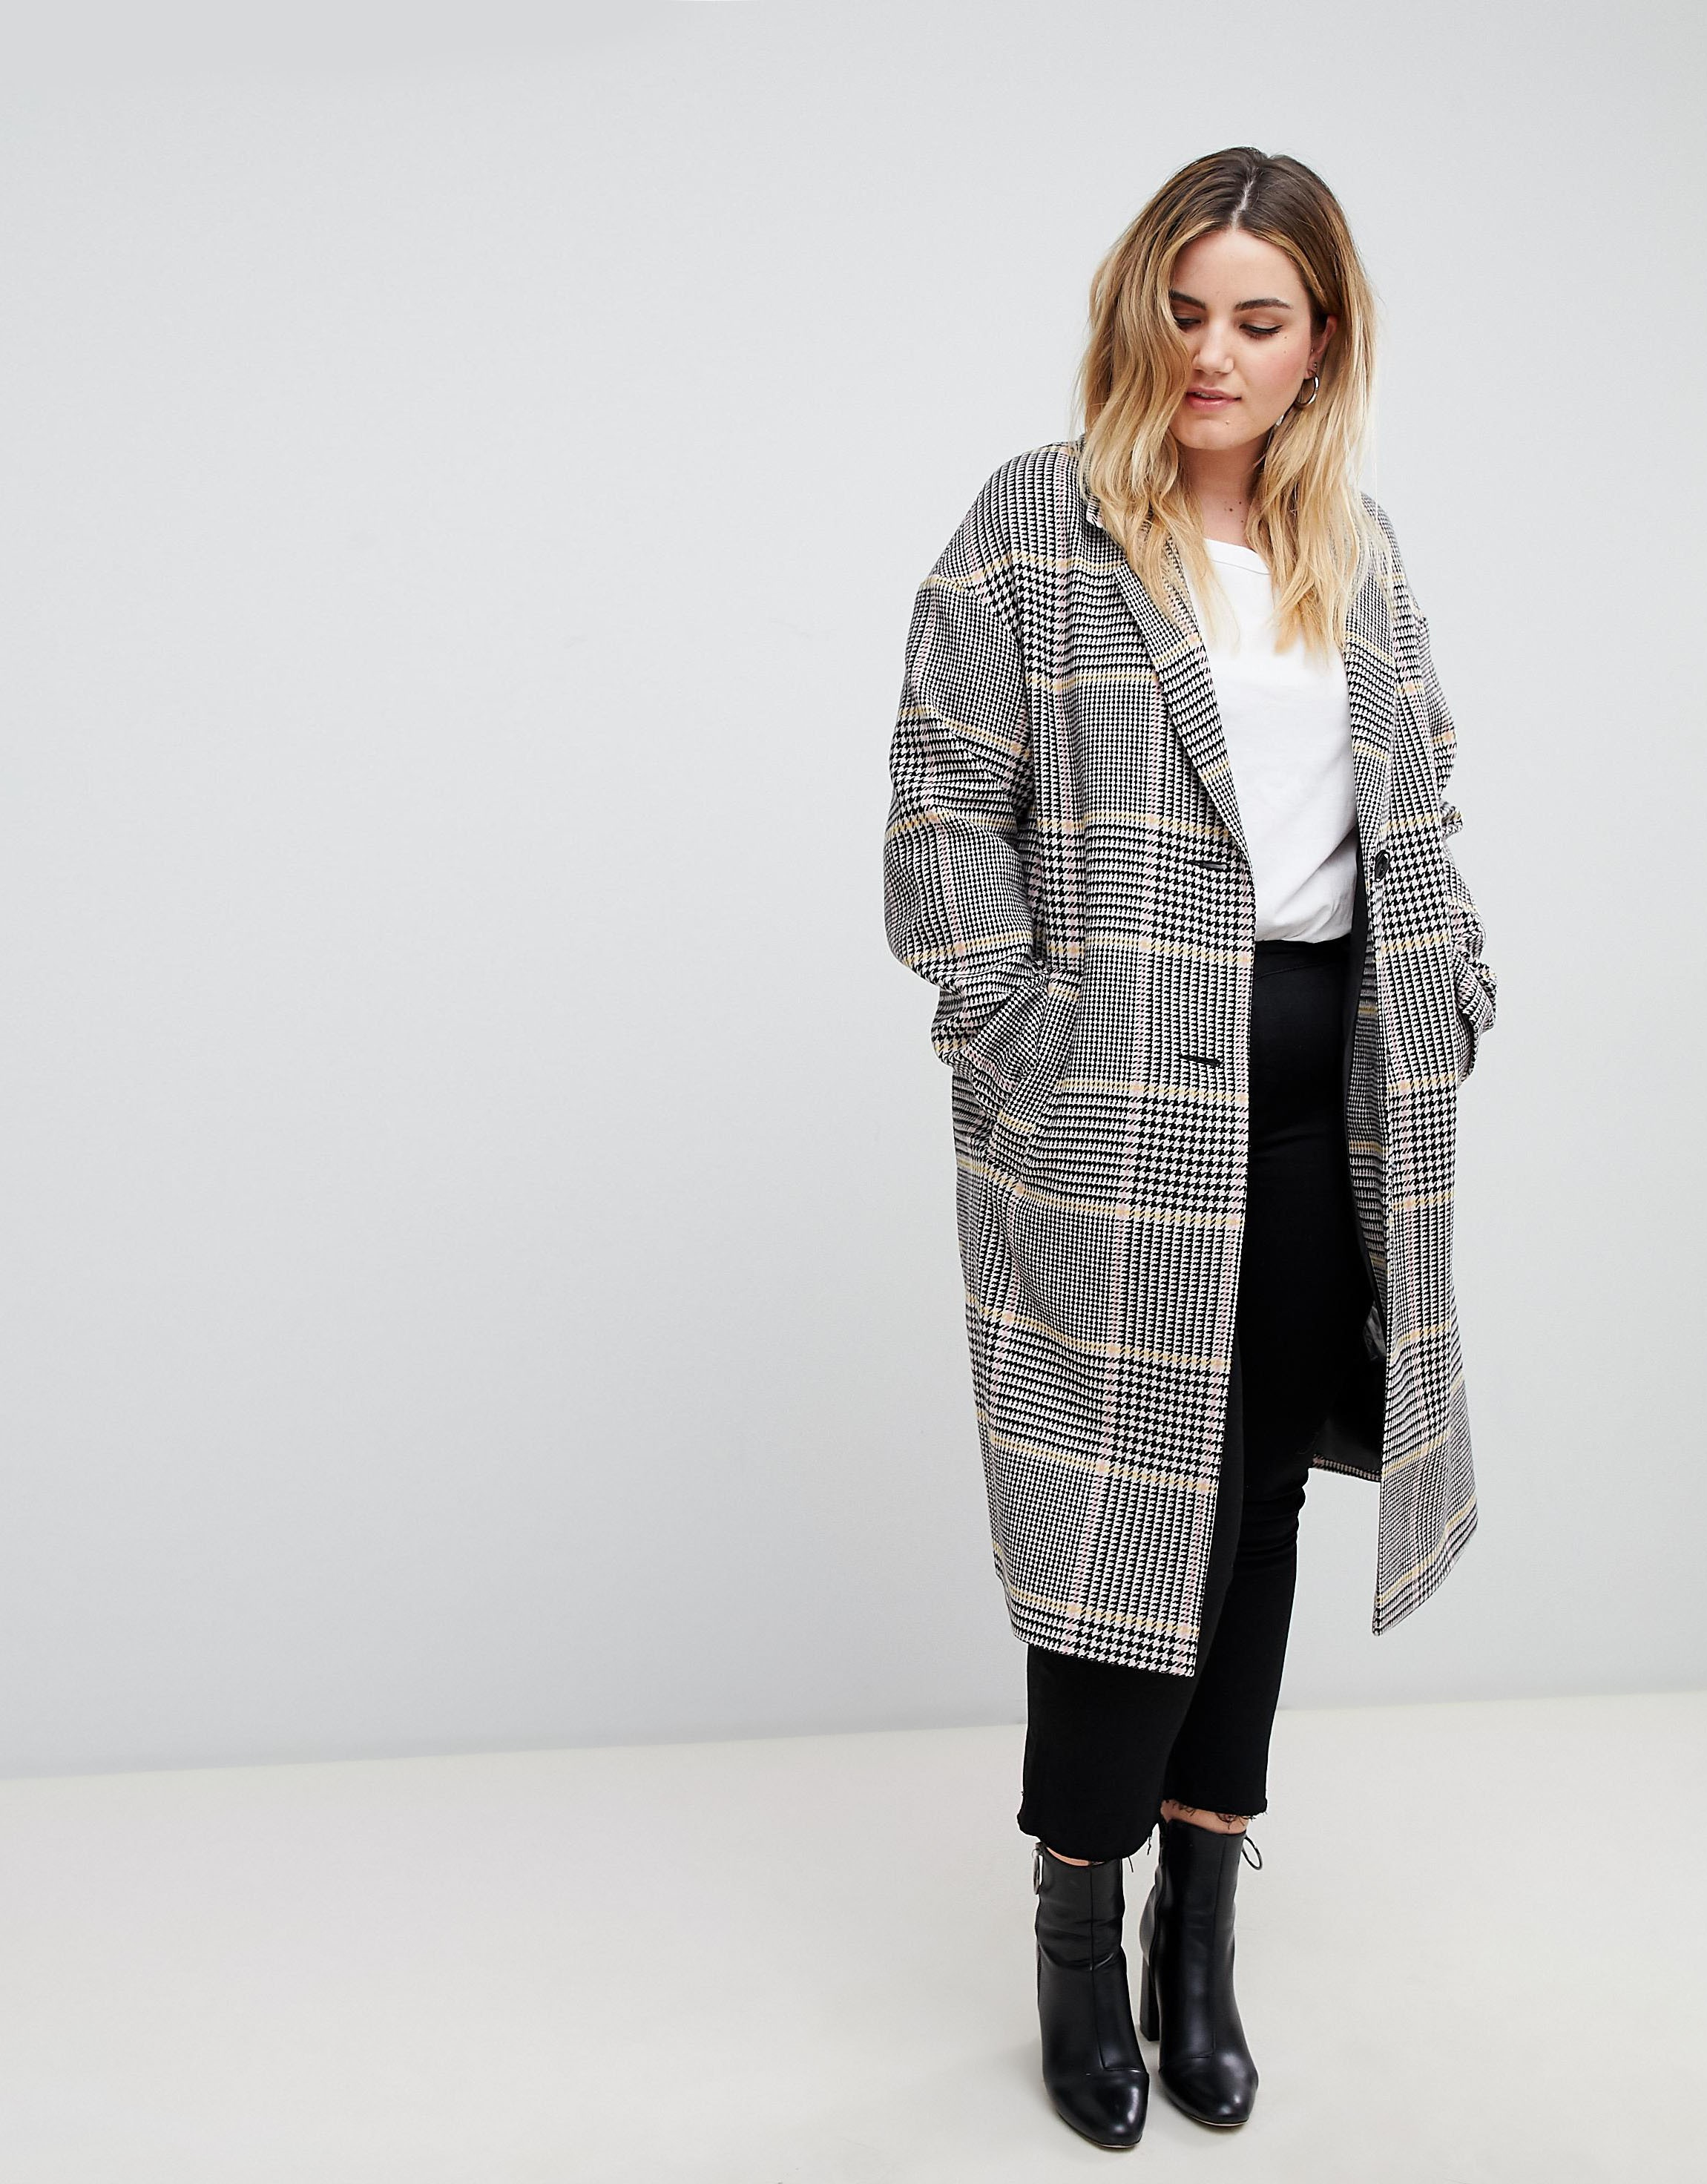 The New Season Coat Collection We've Fallen For images